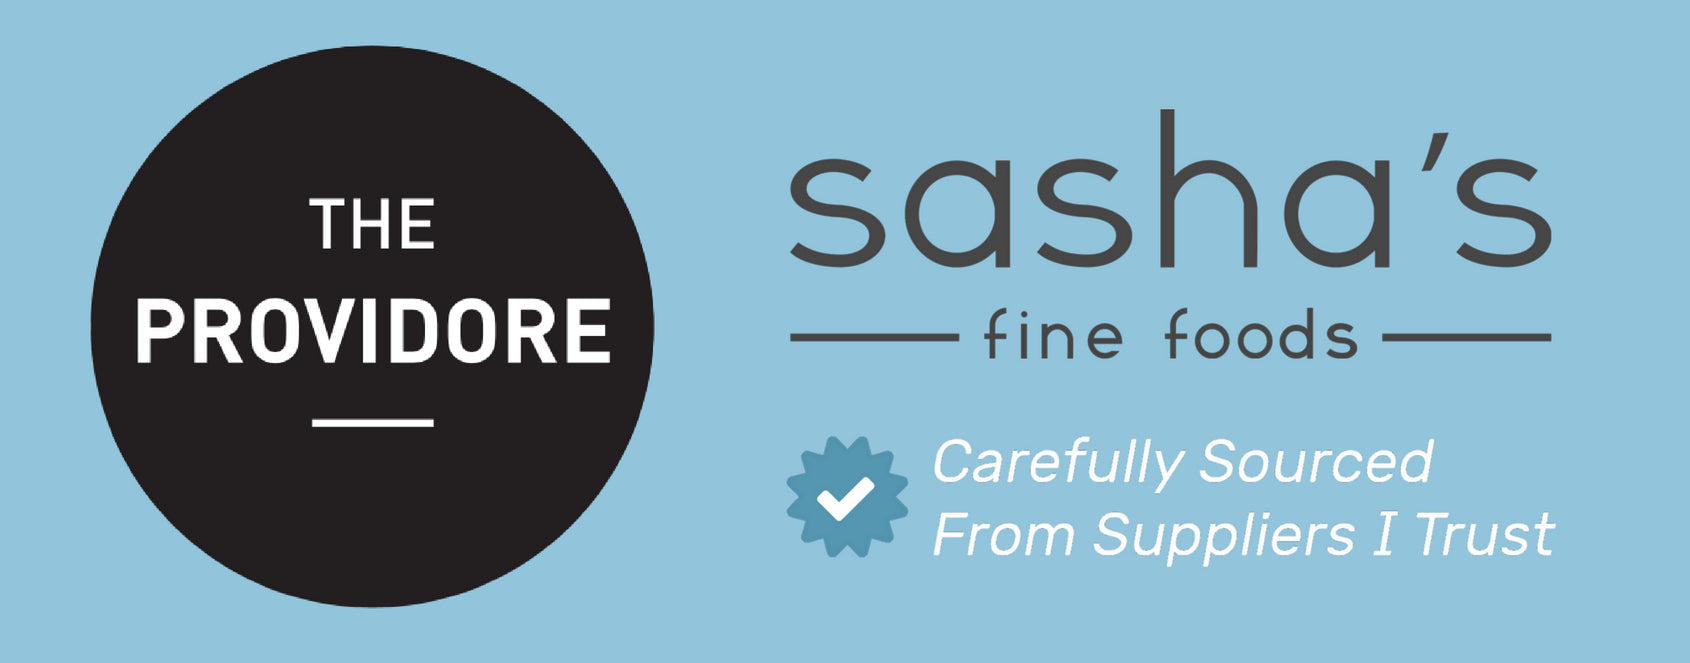 The Providore + Sasha's Fine Foods = A Great Partnership!